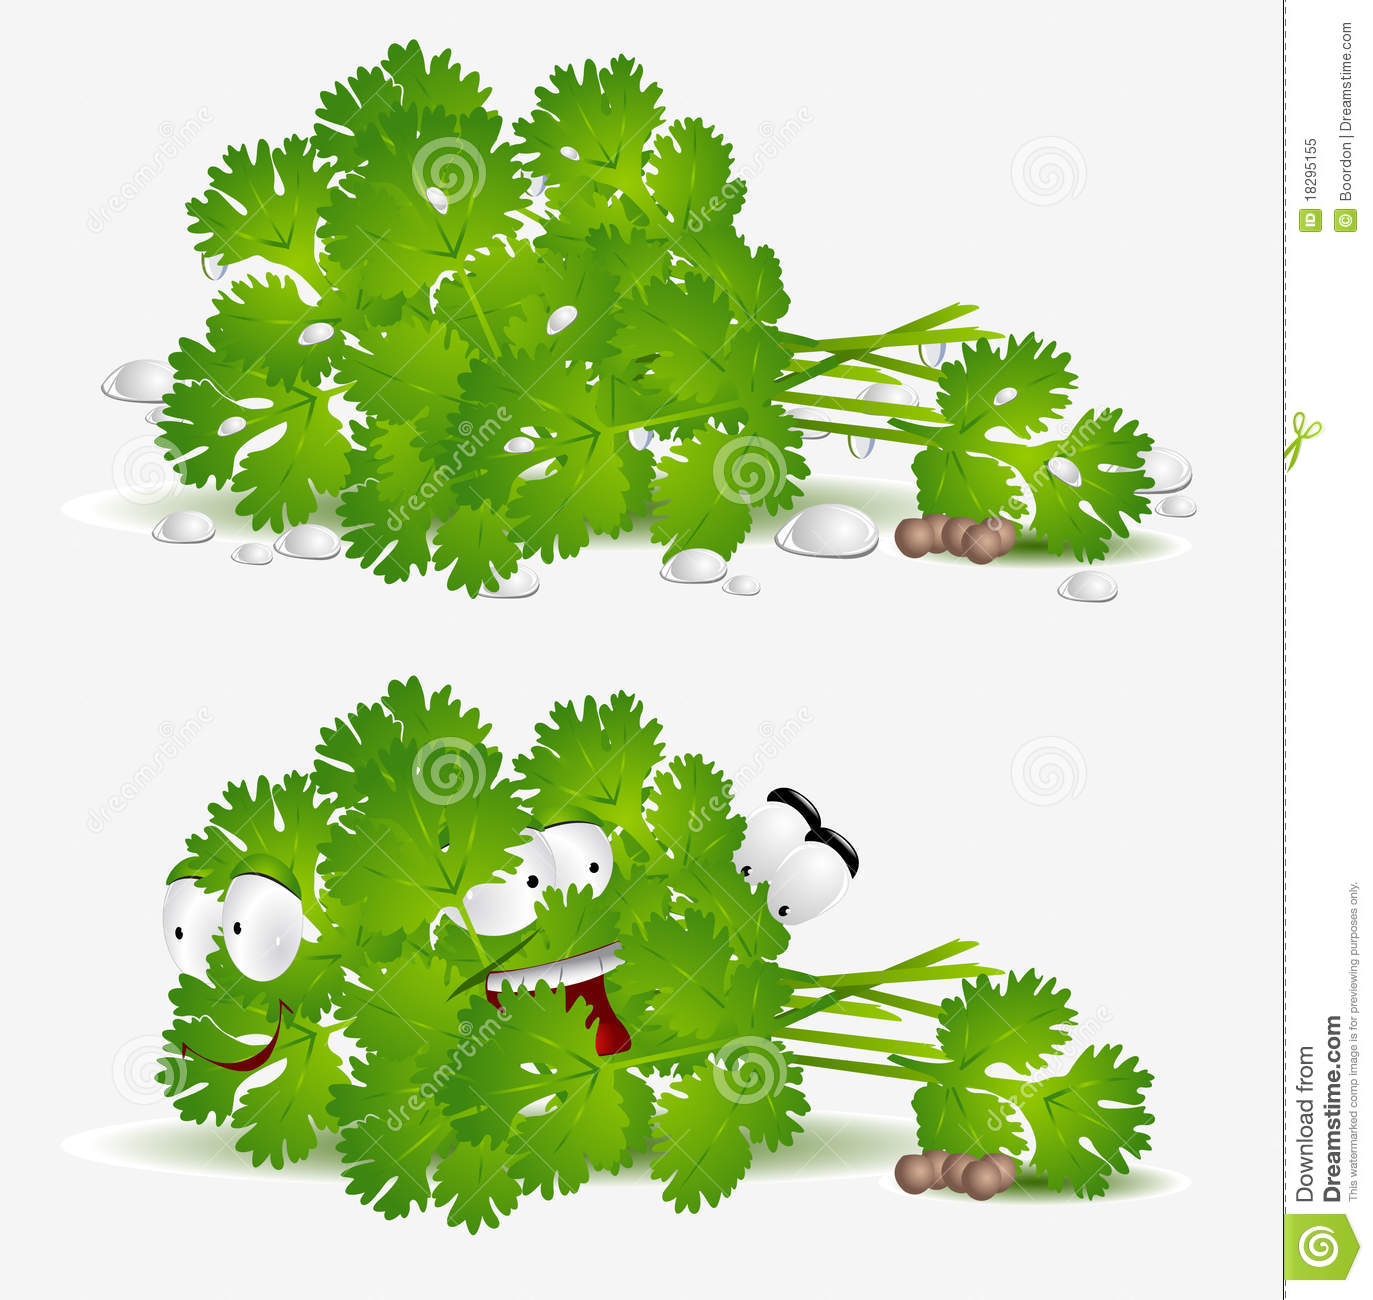 Coriander Stock Illustrations.